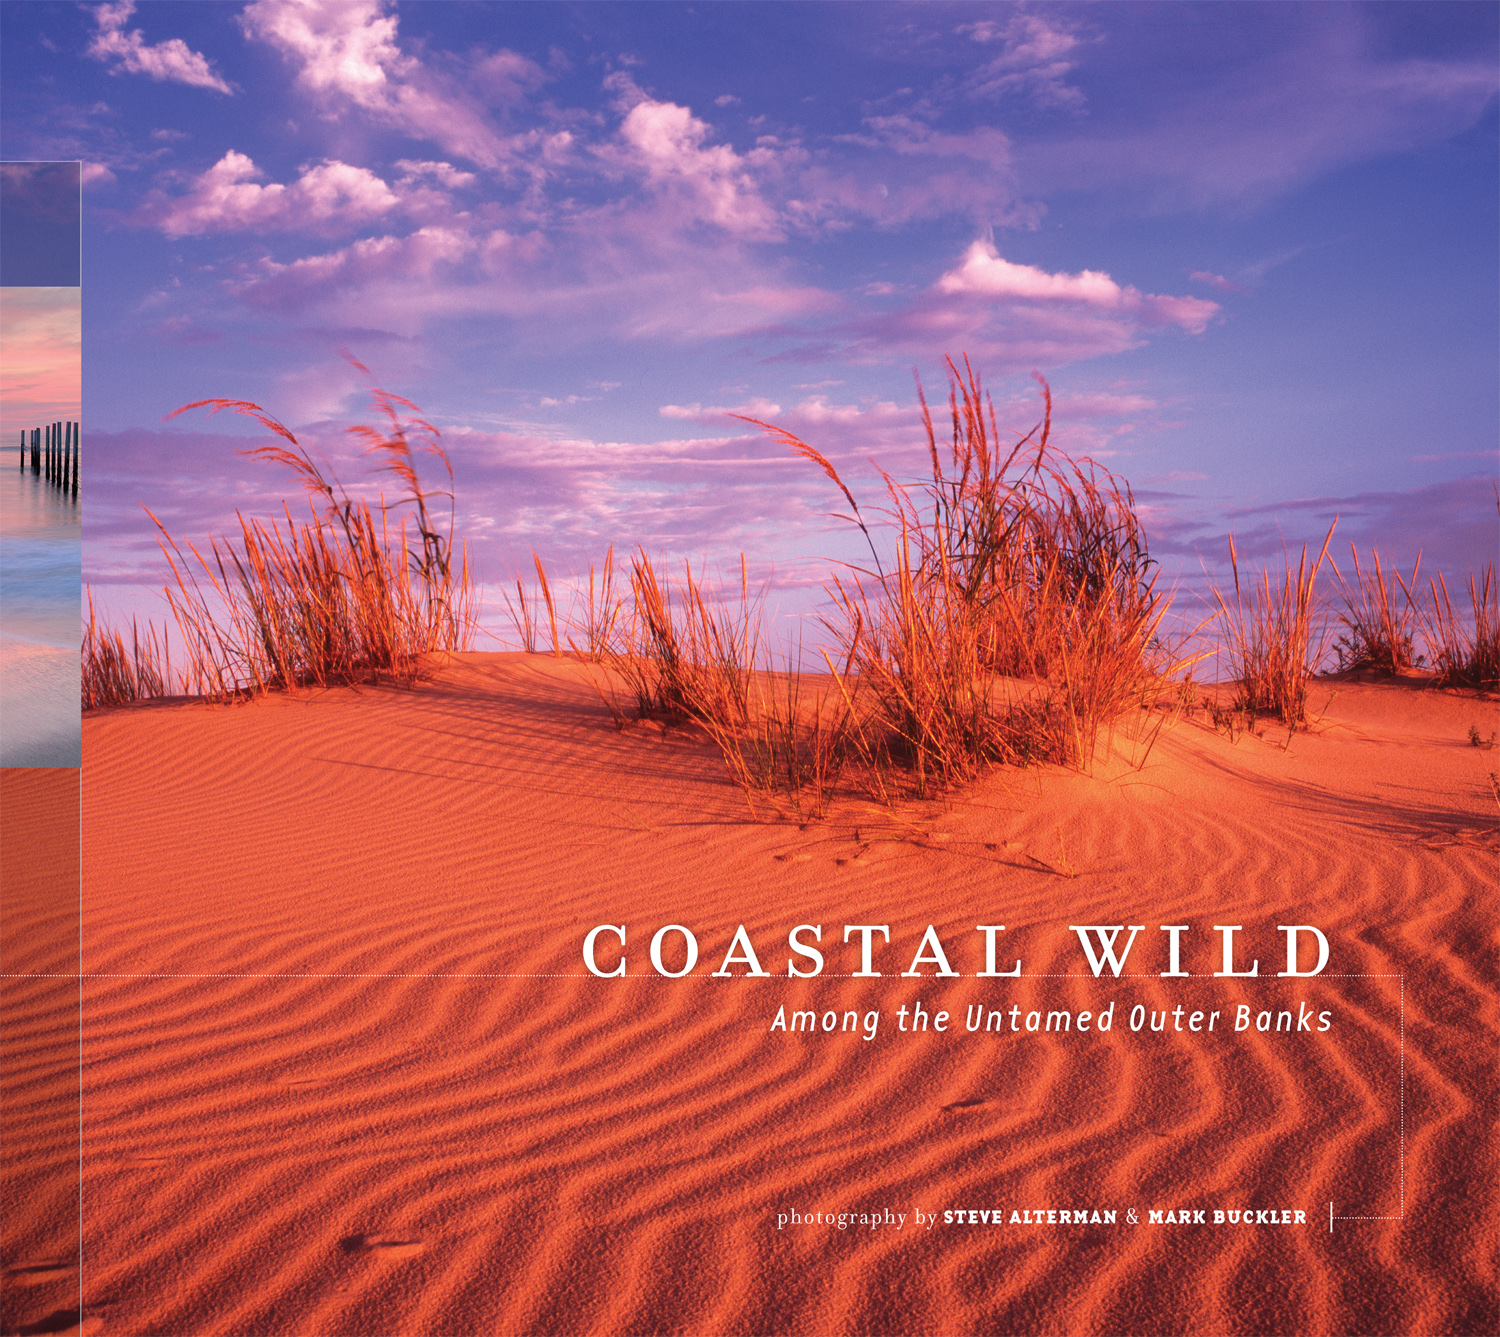 Coastal Wild by Steve Alterman and Mark Buckler